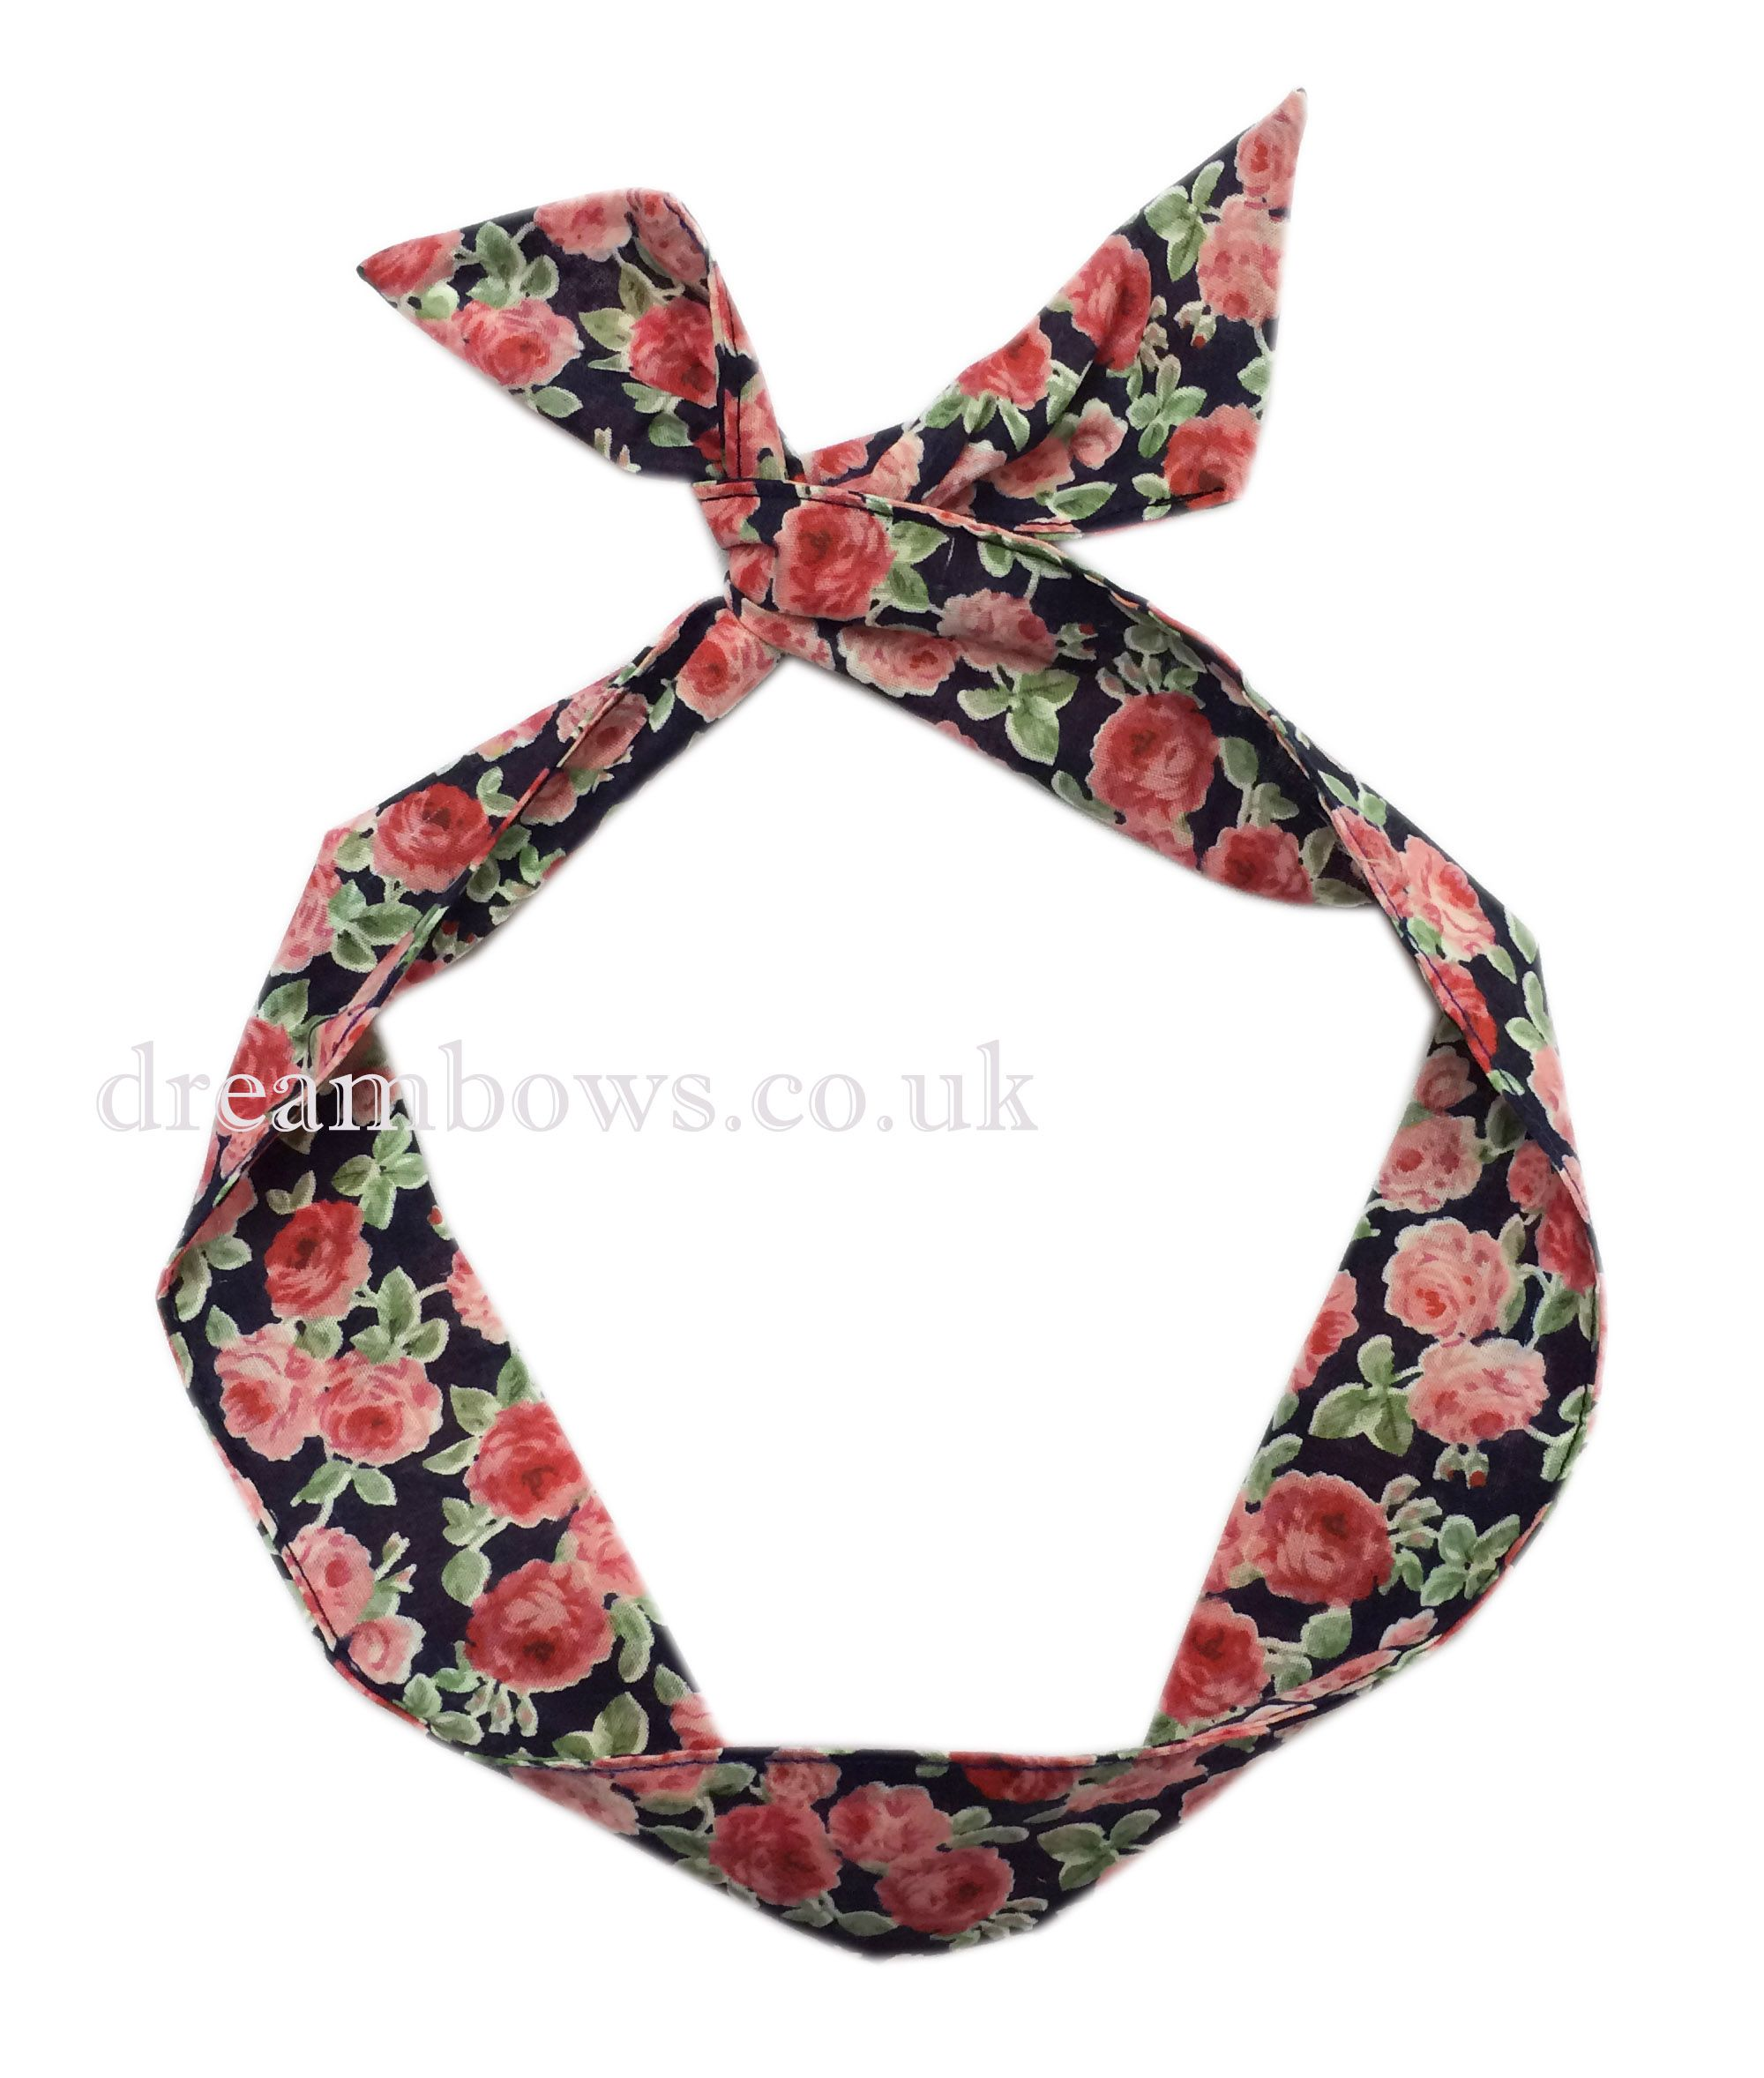 www.dreambows.co.uk Navy blue and pink floral fabric bendy wire ...